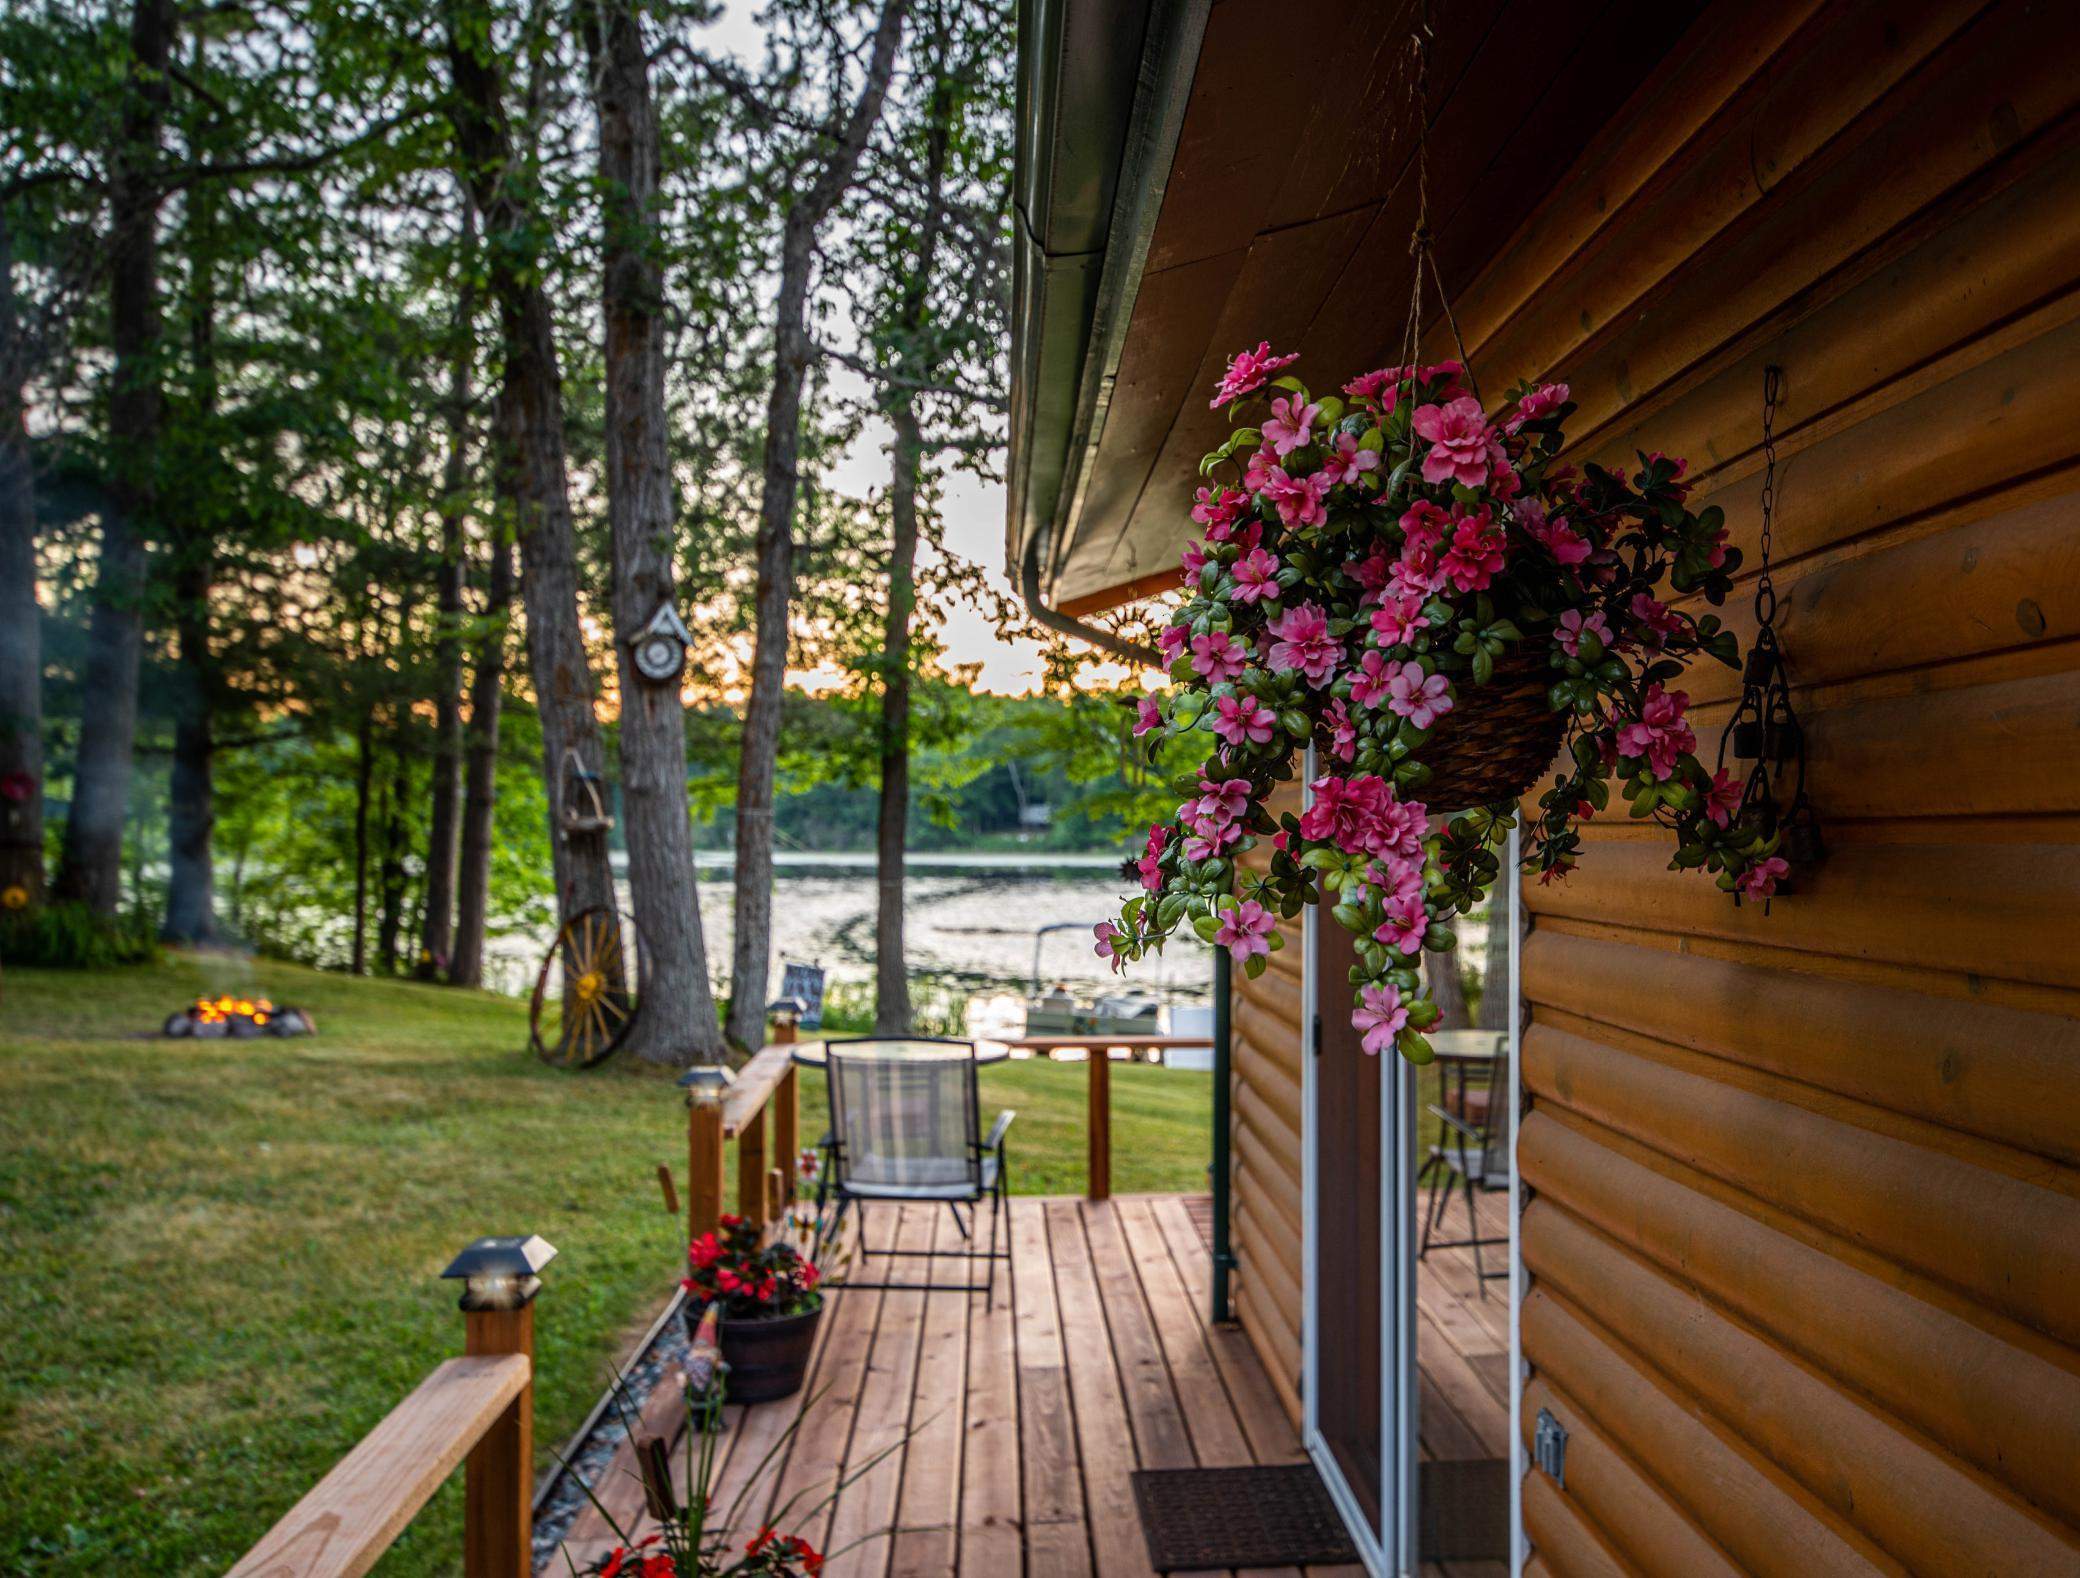 Turnkey, easy care cabin with 200 feet of lakeshore. A terrific spot for those looking to experience the recreation Northern Minnesota is known for without breaking the budget. The home comes with just about everything you need to start enjoying lazy days at the lake, including furnishings, appliances, dock and even a 16 foot pontoon with trailer. Renovations in the last few years include a new septic, roof, 22x25 garage wired for 220V, decks, drain tile and plumbing. There is also an 18x20 carport for storing toys or the pontoon. If you have to check in with the outside world, fiber optic internet is available for hook up. Quiet, tranquil setting with panfish, bass, northern and the occasional walleye being favorite catches.   Imagine sitting on the log swing and relaxing while letting life's chaos fade away. View the drone video & come take a look.